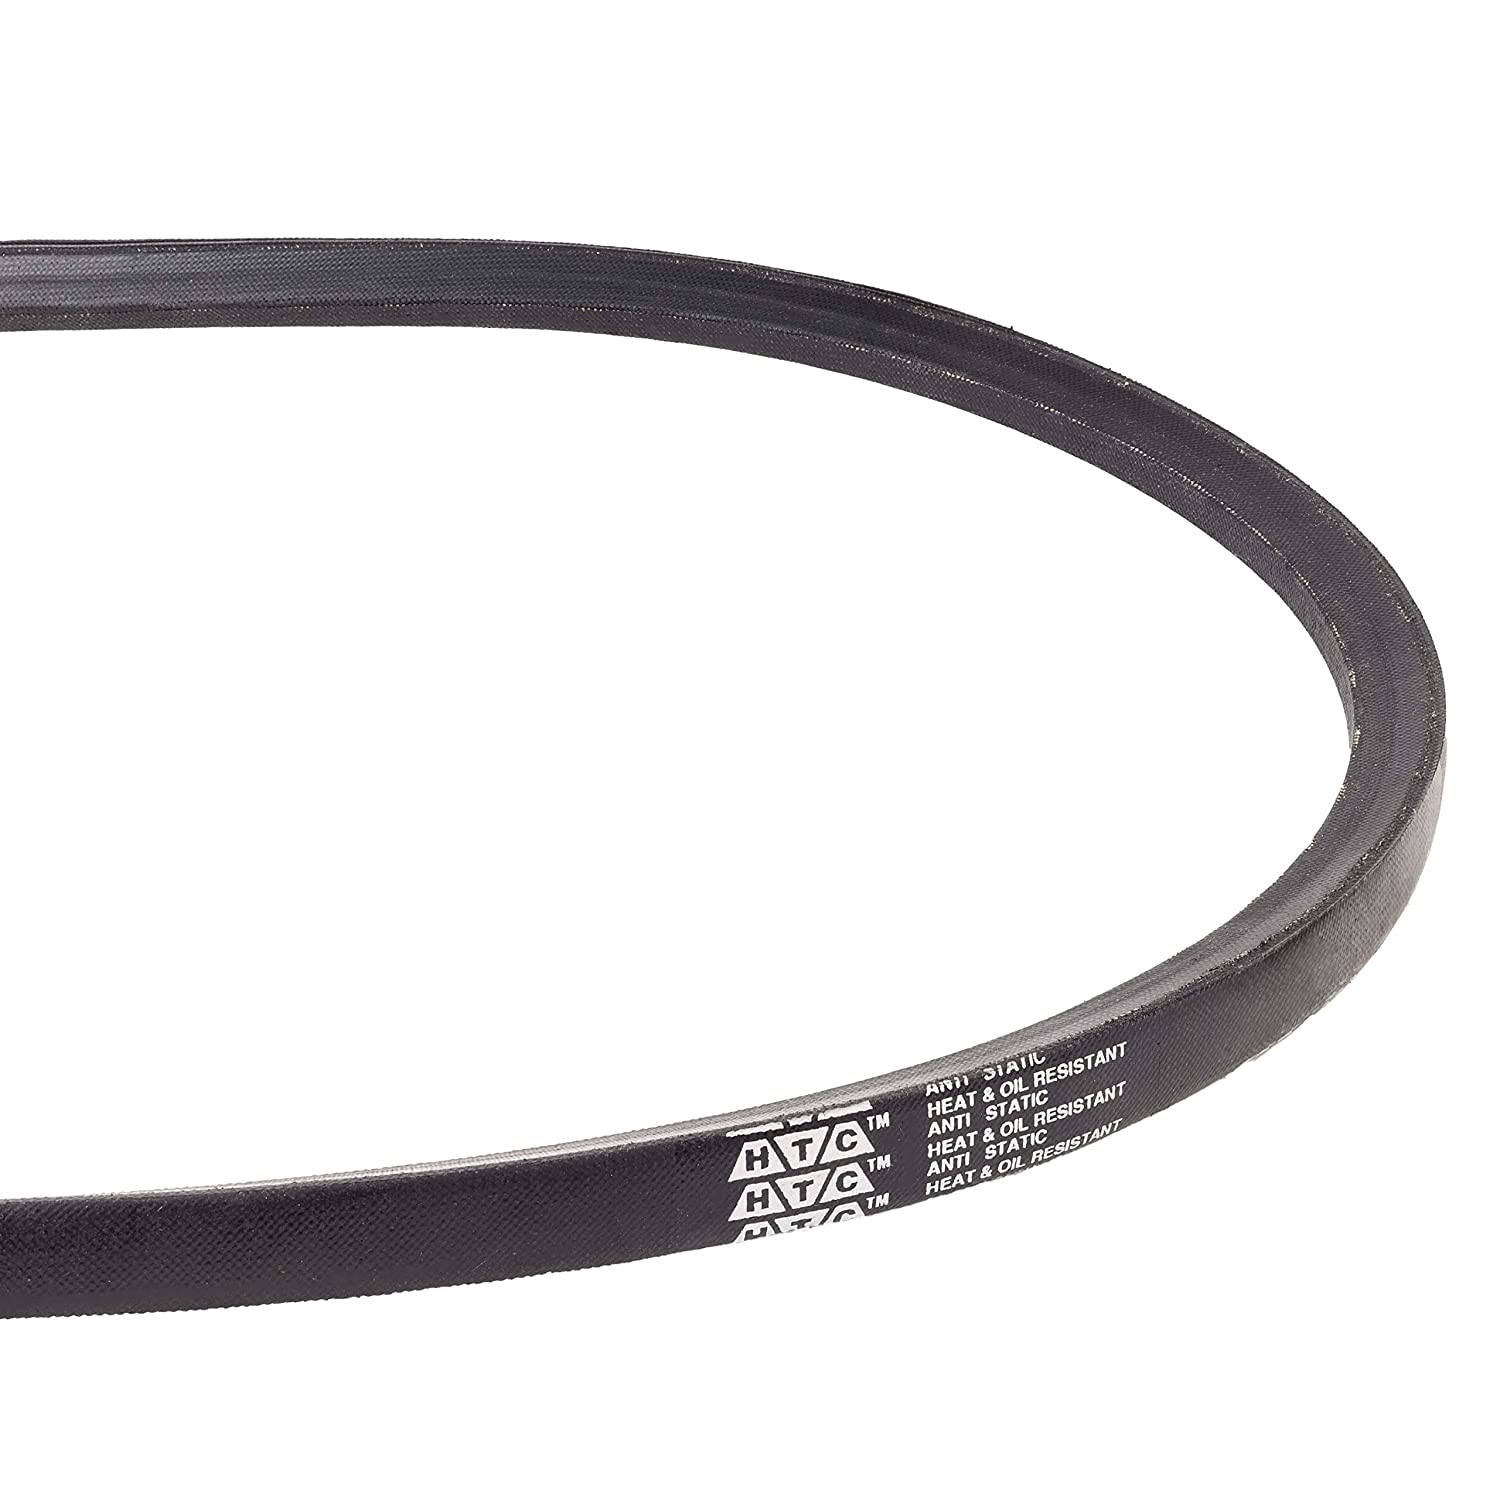 HTC SPZ710 Wedge Wrapped V Belt 8mm x 10mm Outer Length 710mm